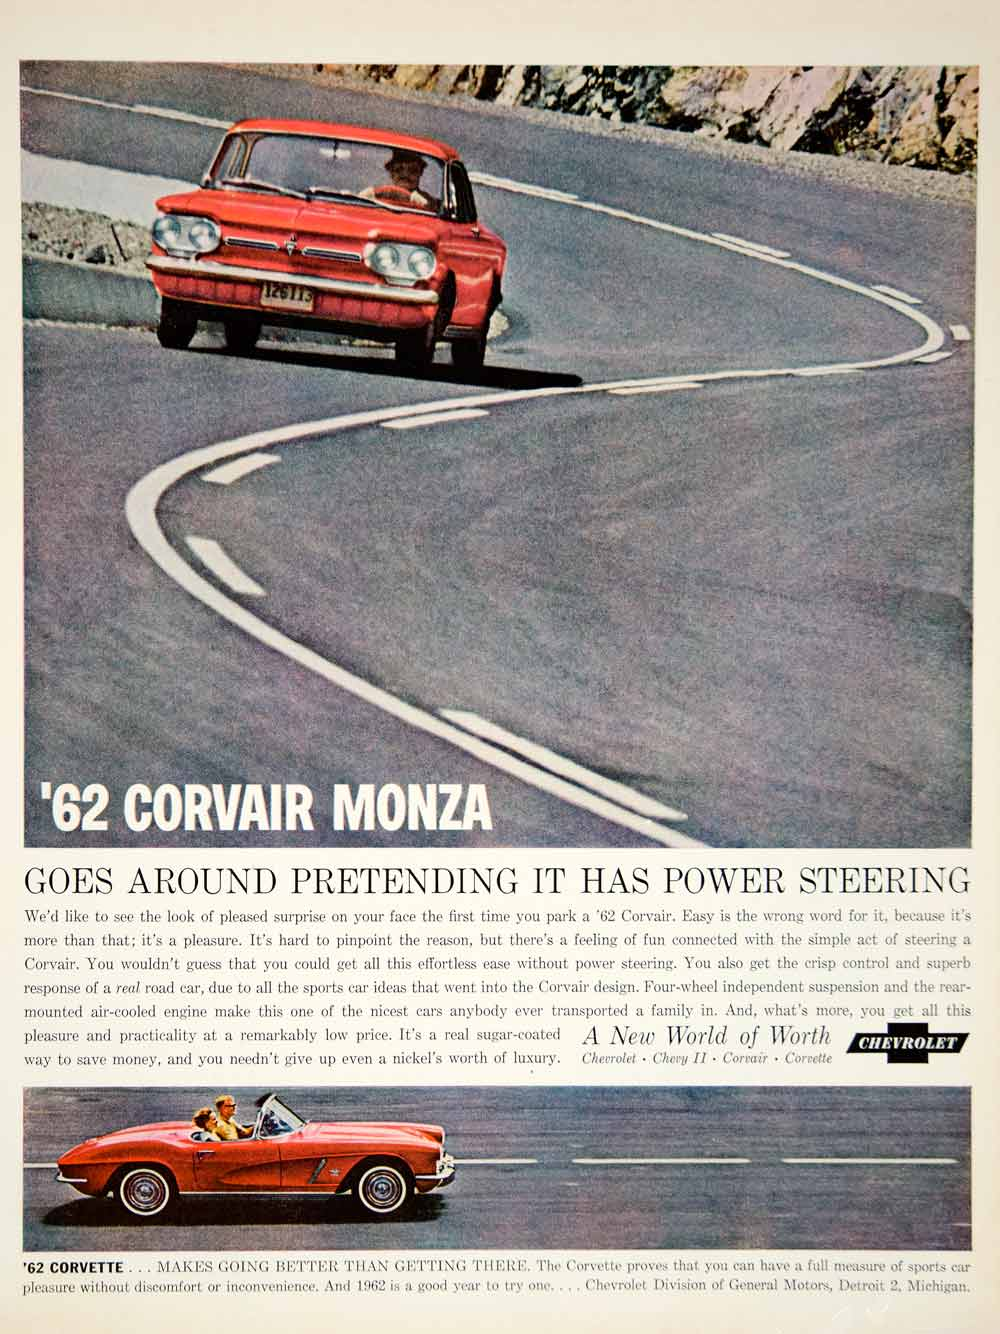 1962 Ad Vintage Chevrolet Corvair Monza Red Convertible Car Automobile YMM5